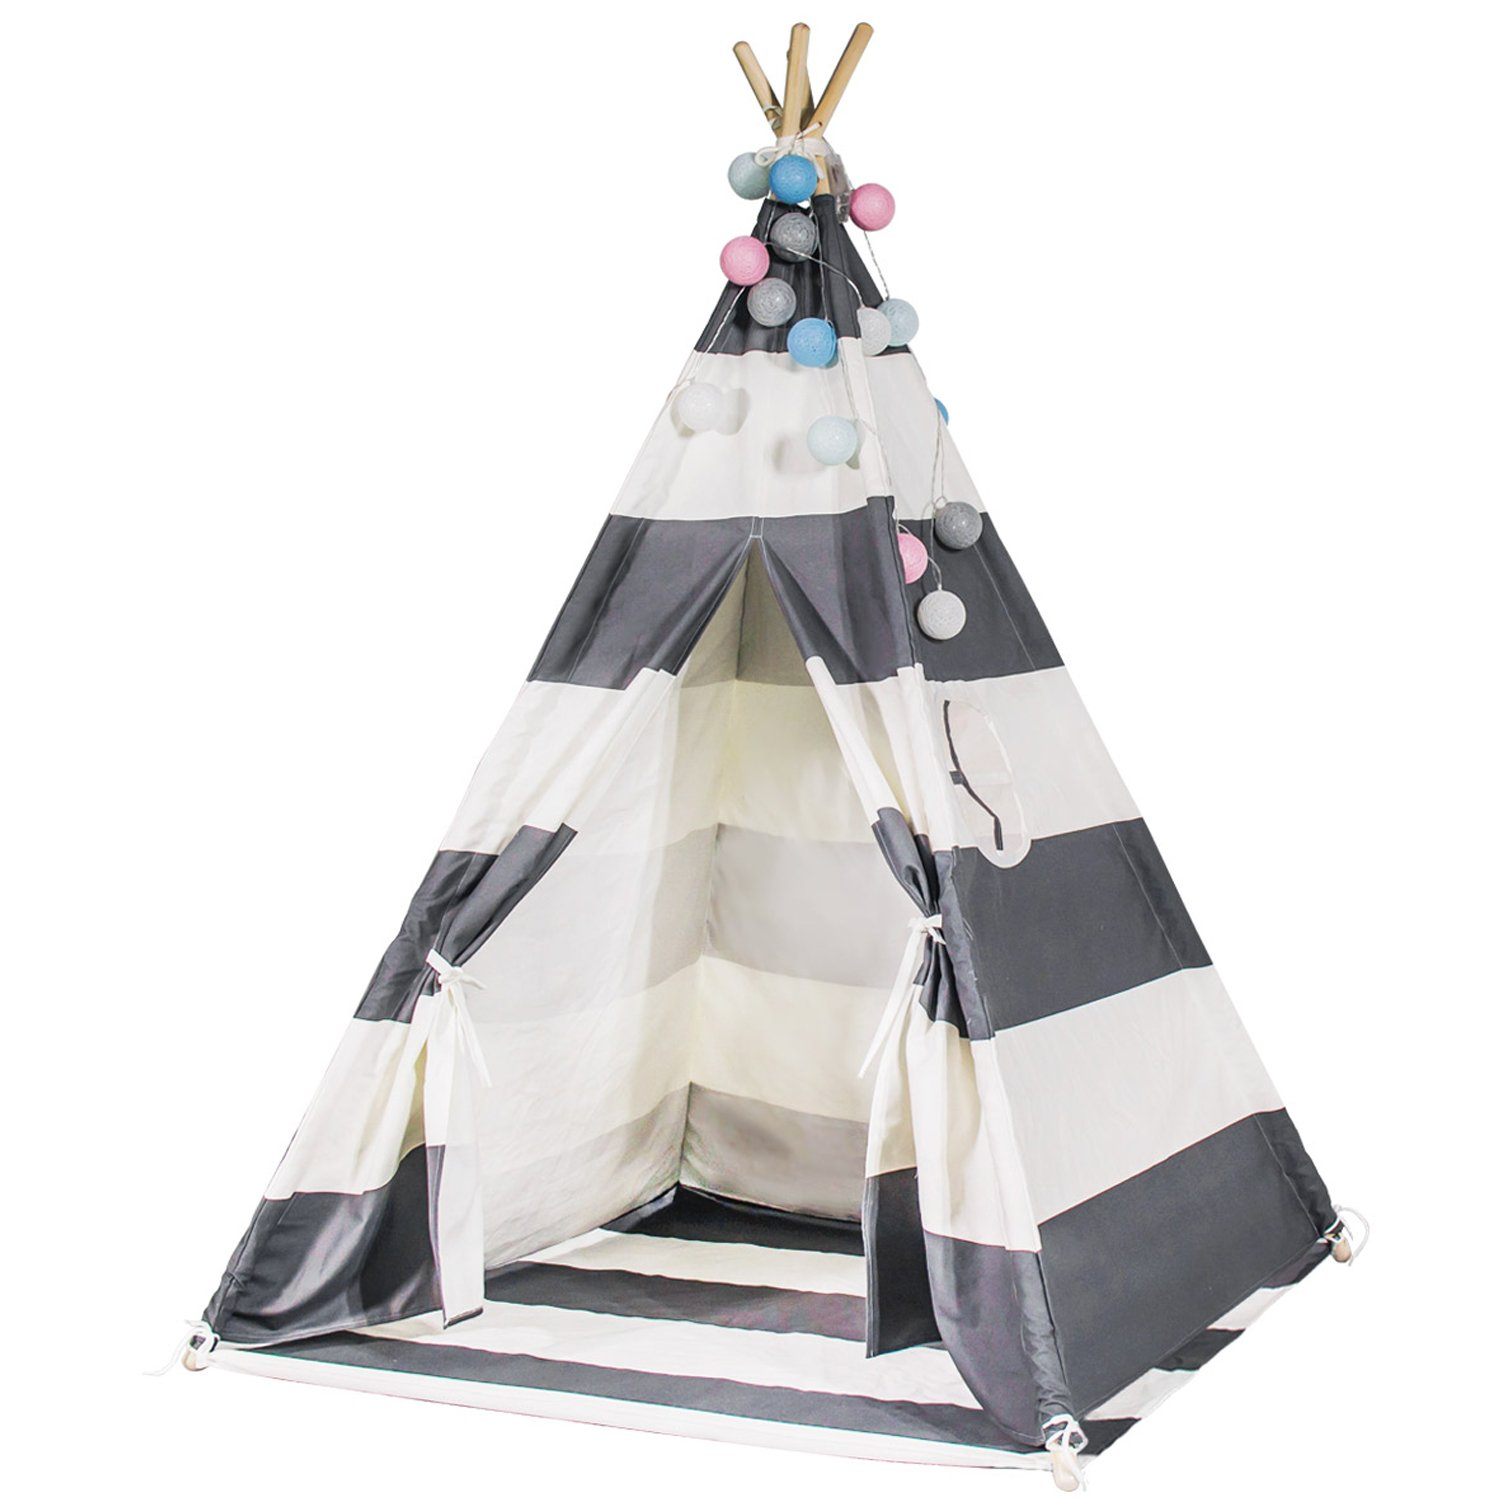 Touch-Rich 6FT Durable Teepee for Kids, Indian Play Tent, Sturdy & Safe Kids' Furniture with Window & Floor, Including Style Matching Accessories (stripe grey teepee)